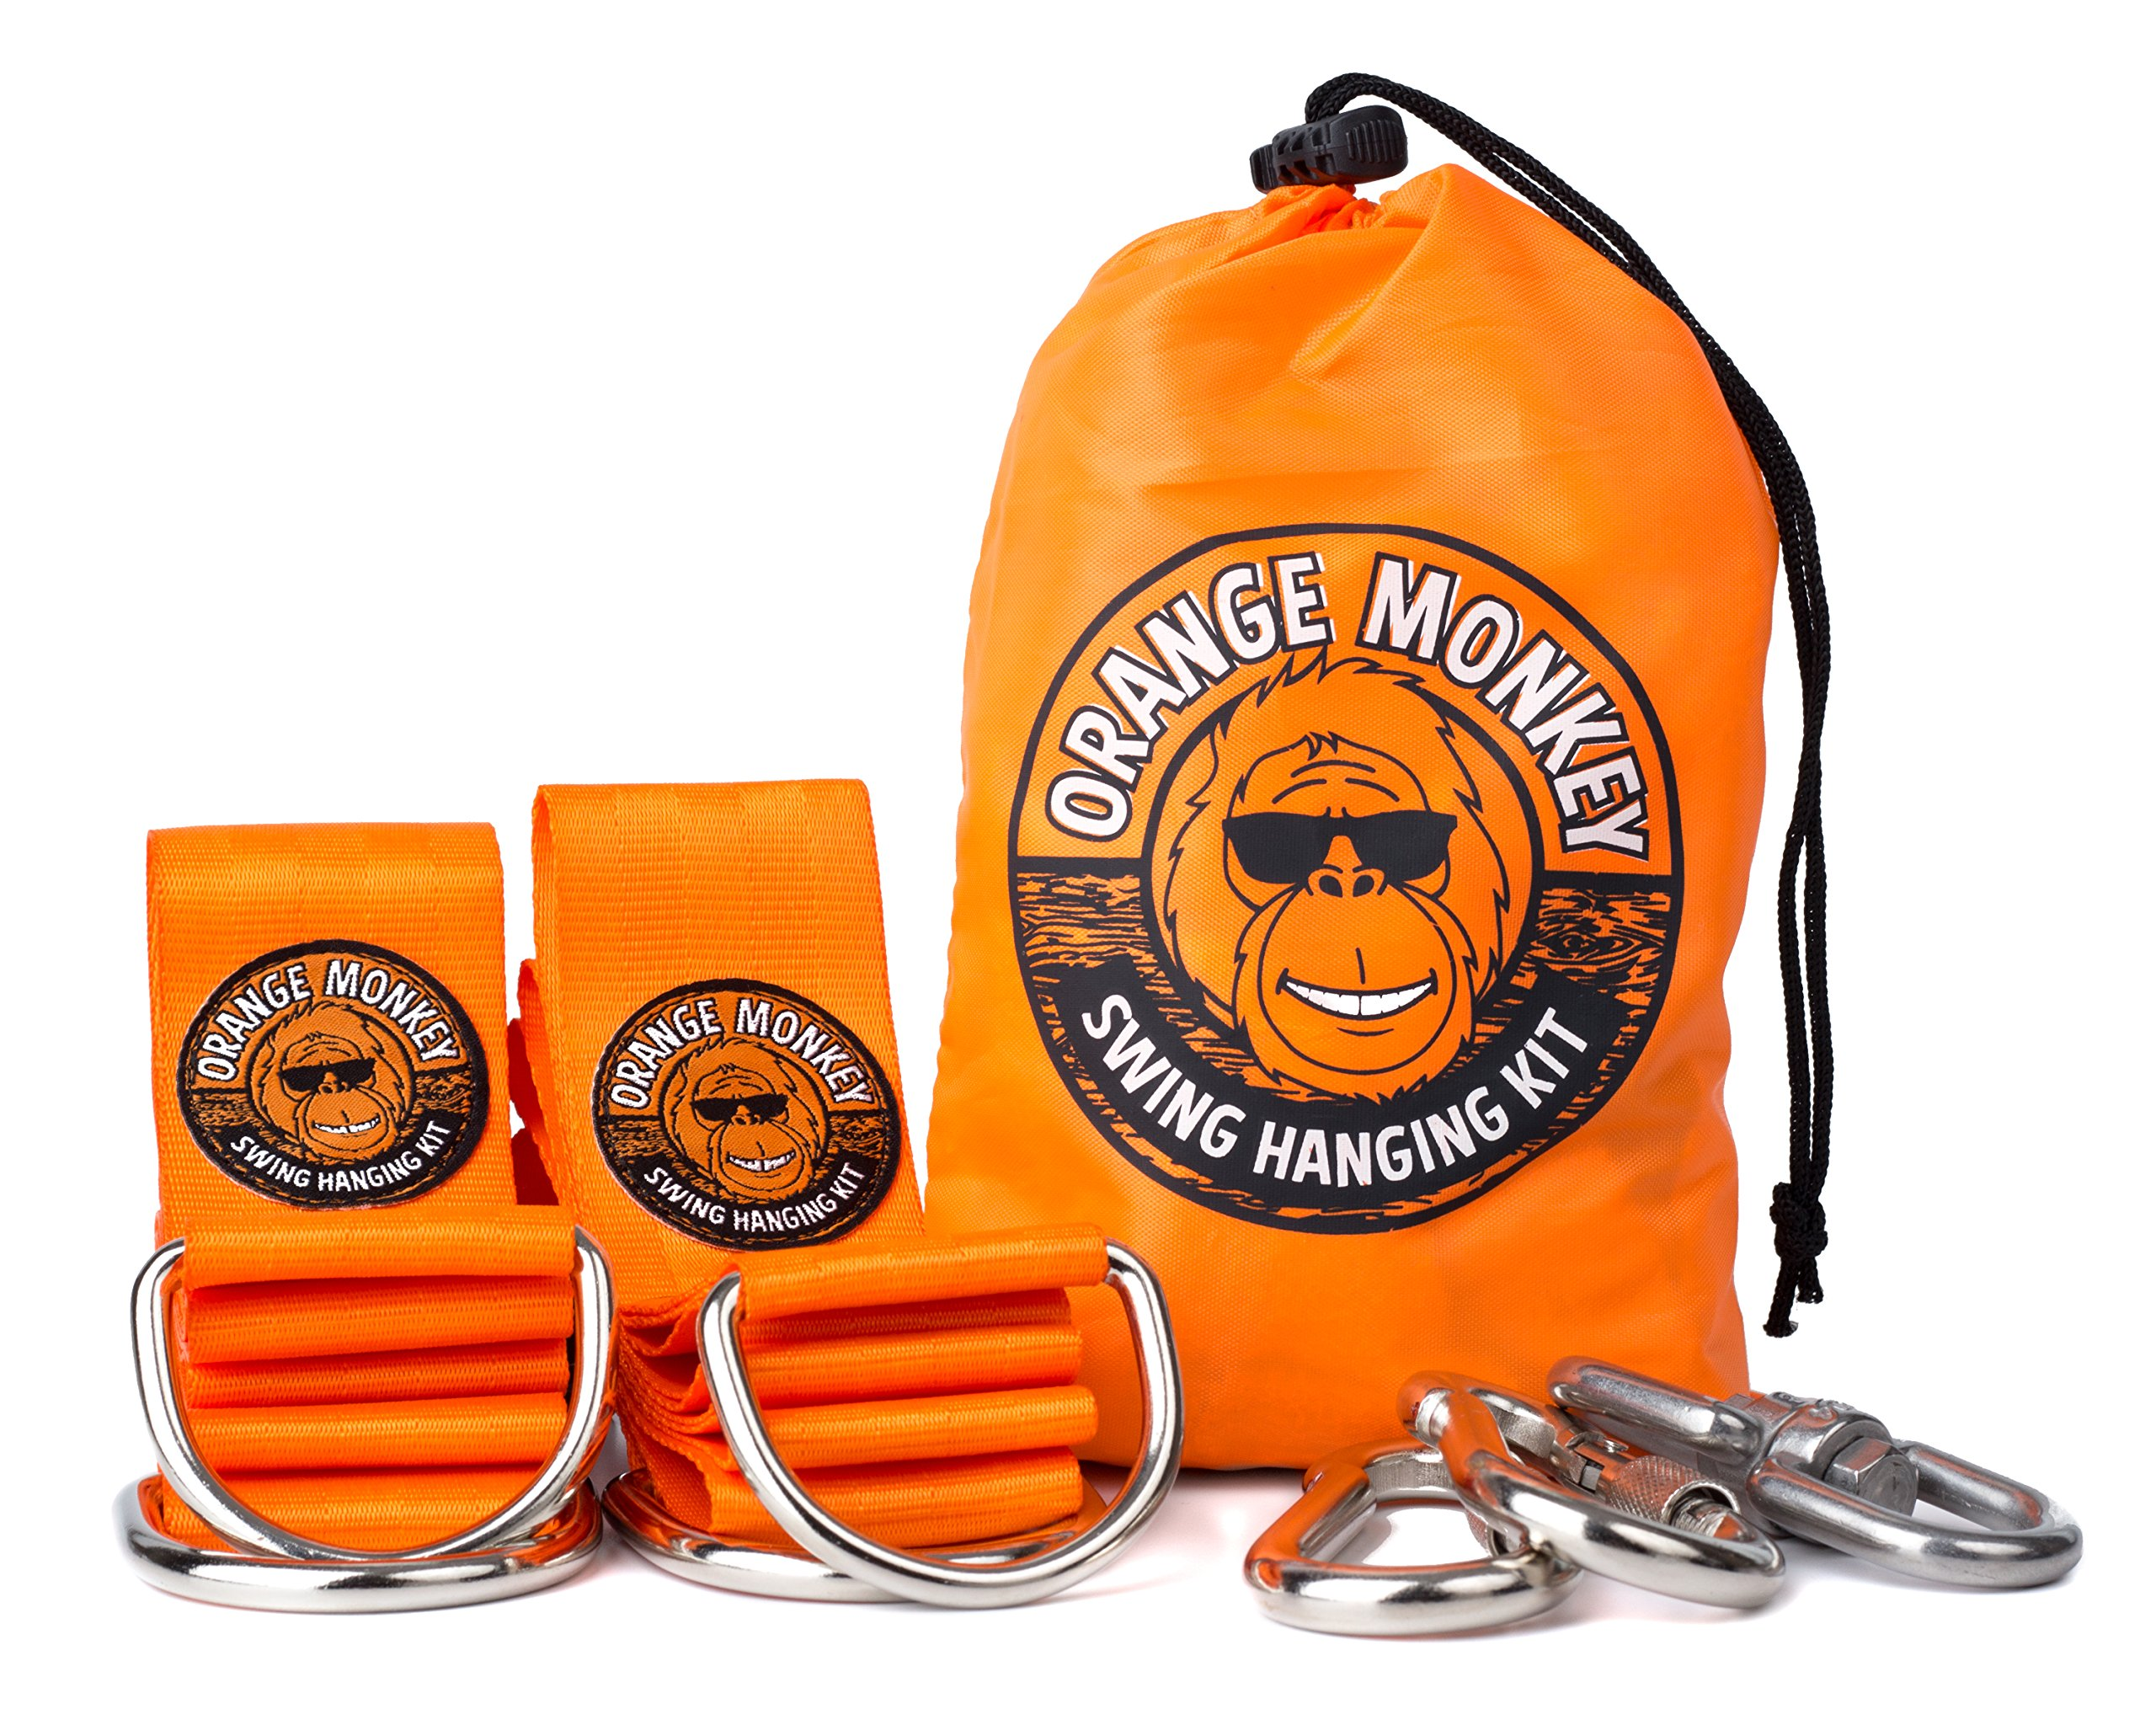 Swing Straps | Tree Swing Hanging Kit Connects To Any Swing | (2) 5' Orange Tree Swing Straps With Safety Locking Carabiners | Swing 360 Degrees (Swivel) | SGA Certified | No Tools Required